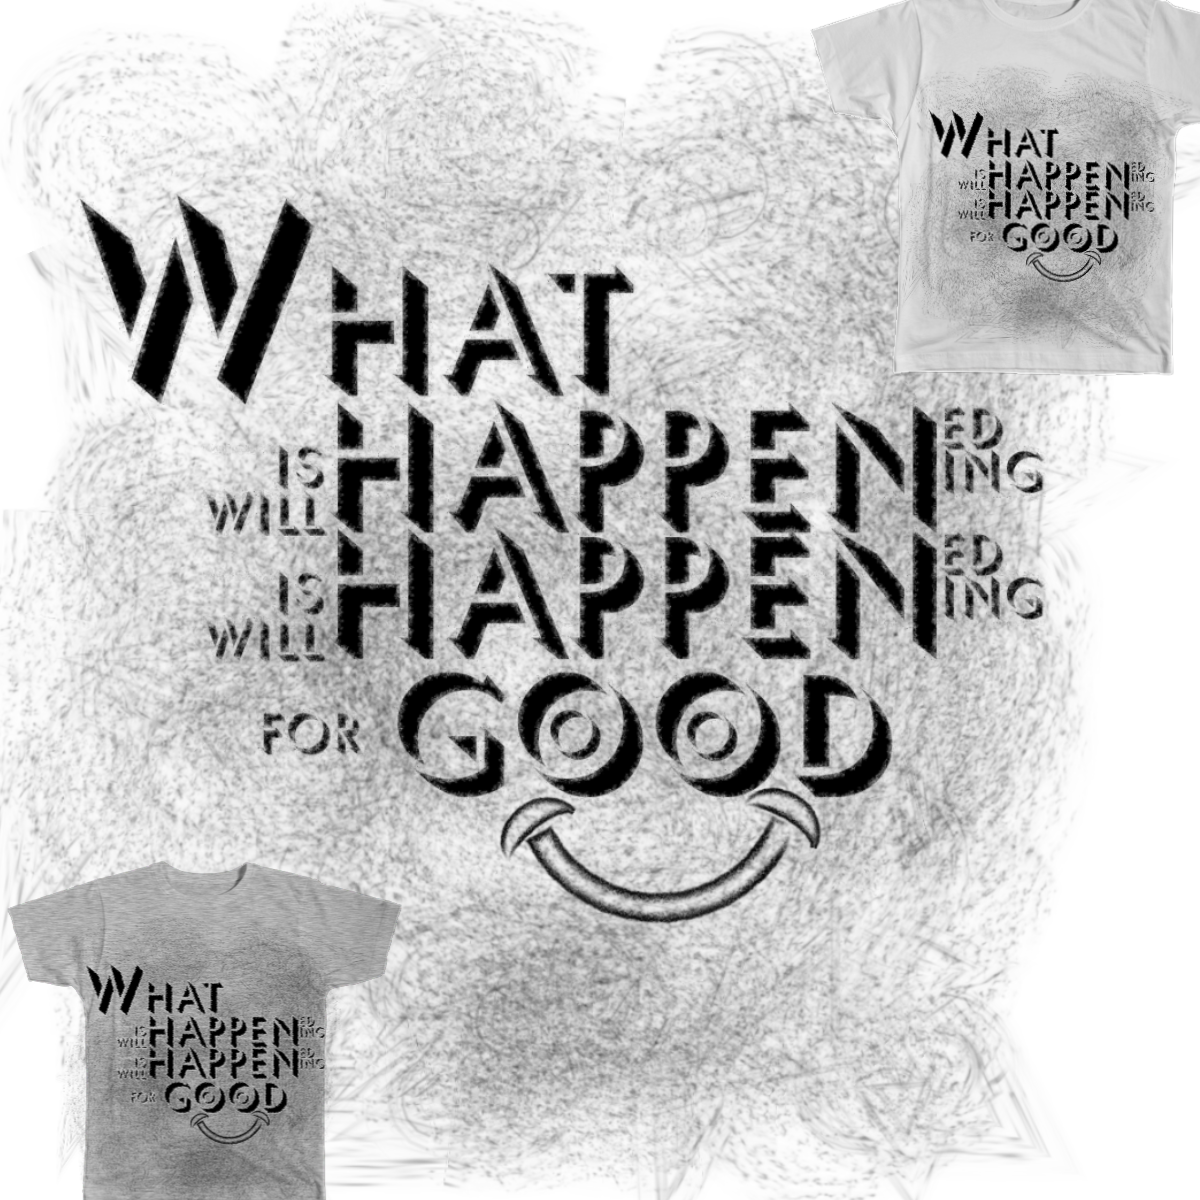 What happen Good by GETHUED on Threadless